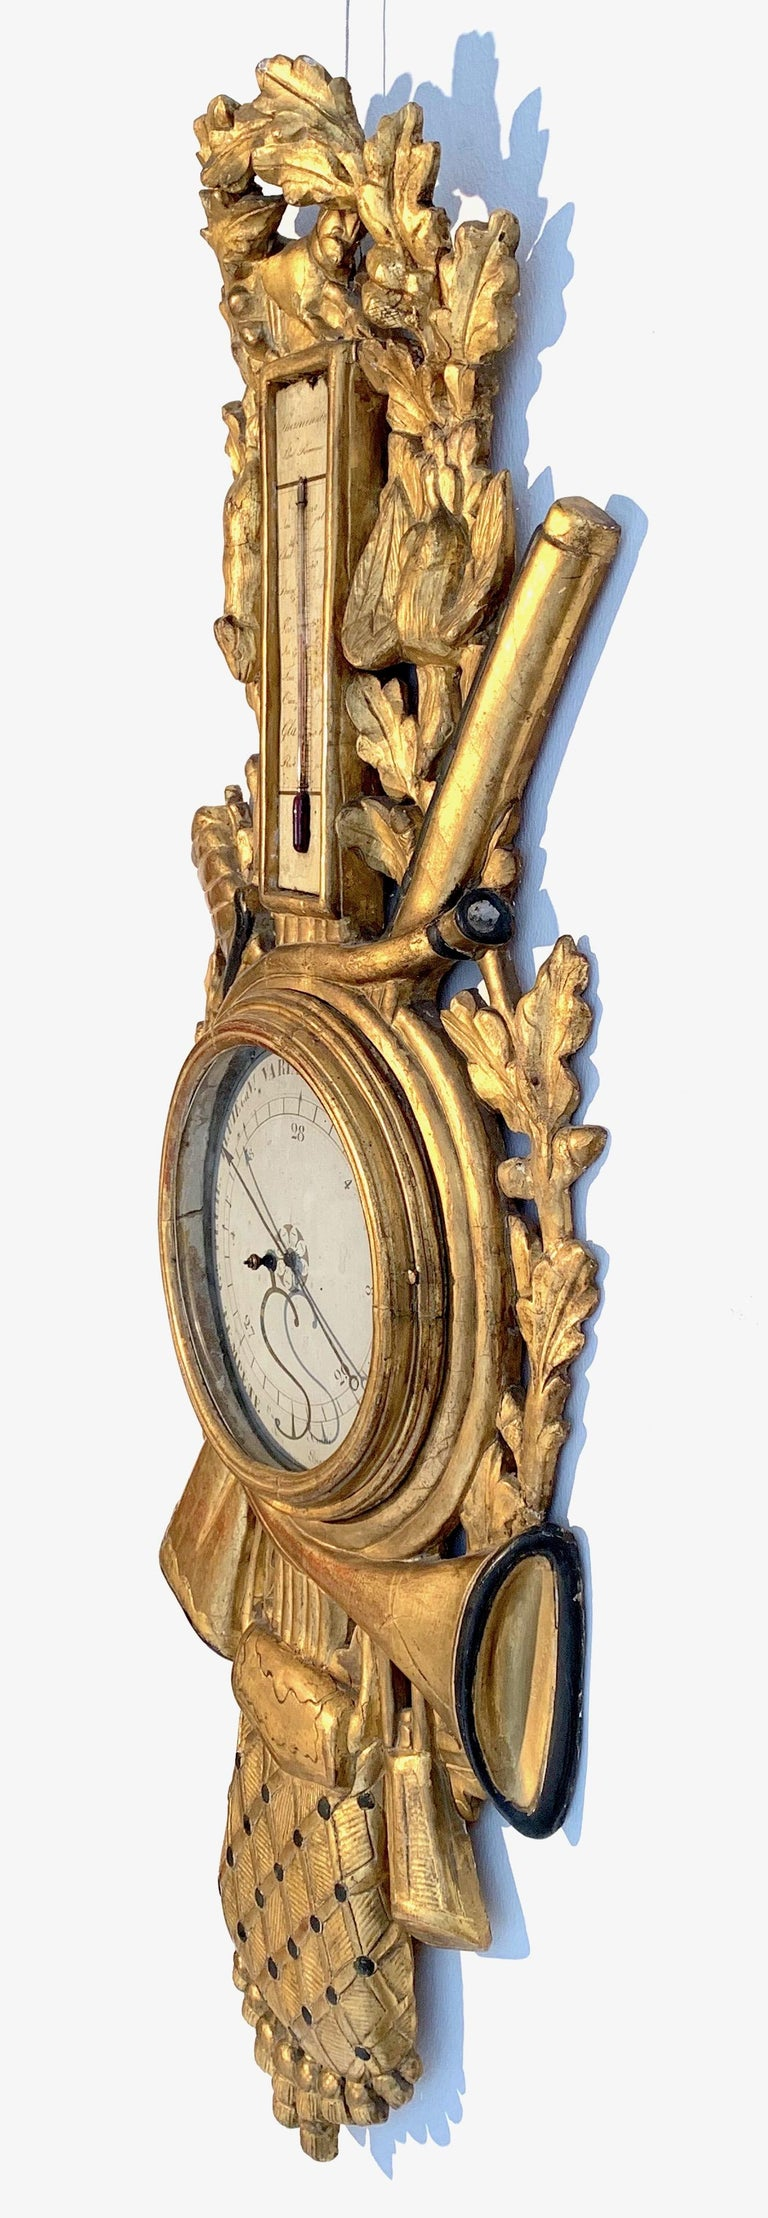 Antique Louis XVI 1775 Paris Beech Wood Barometer and Thermometer for a Hunter For Sale 6